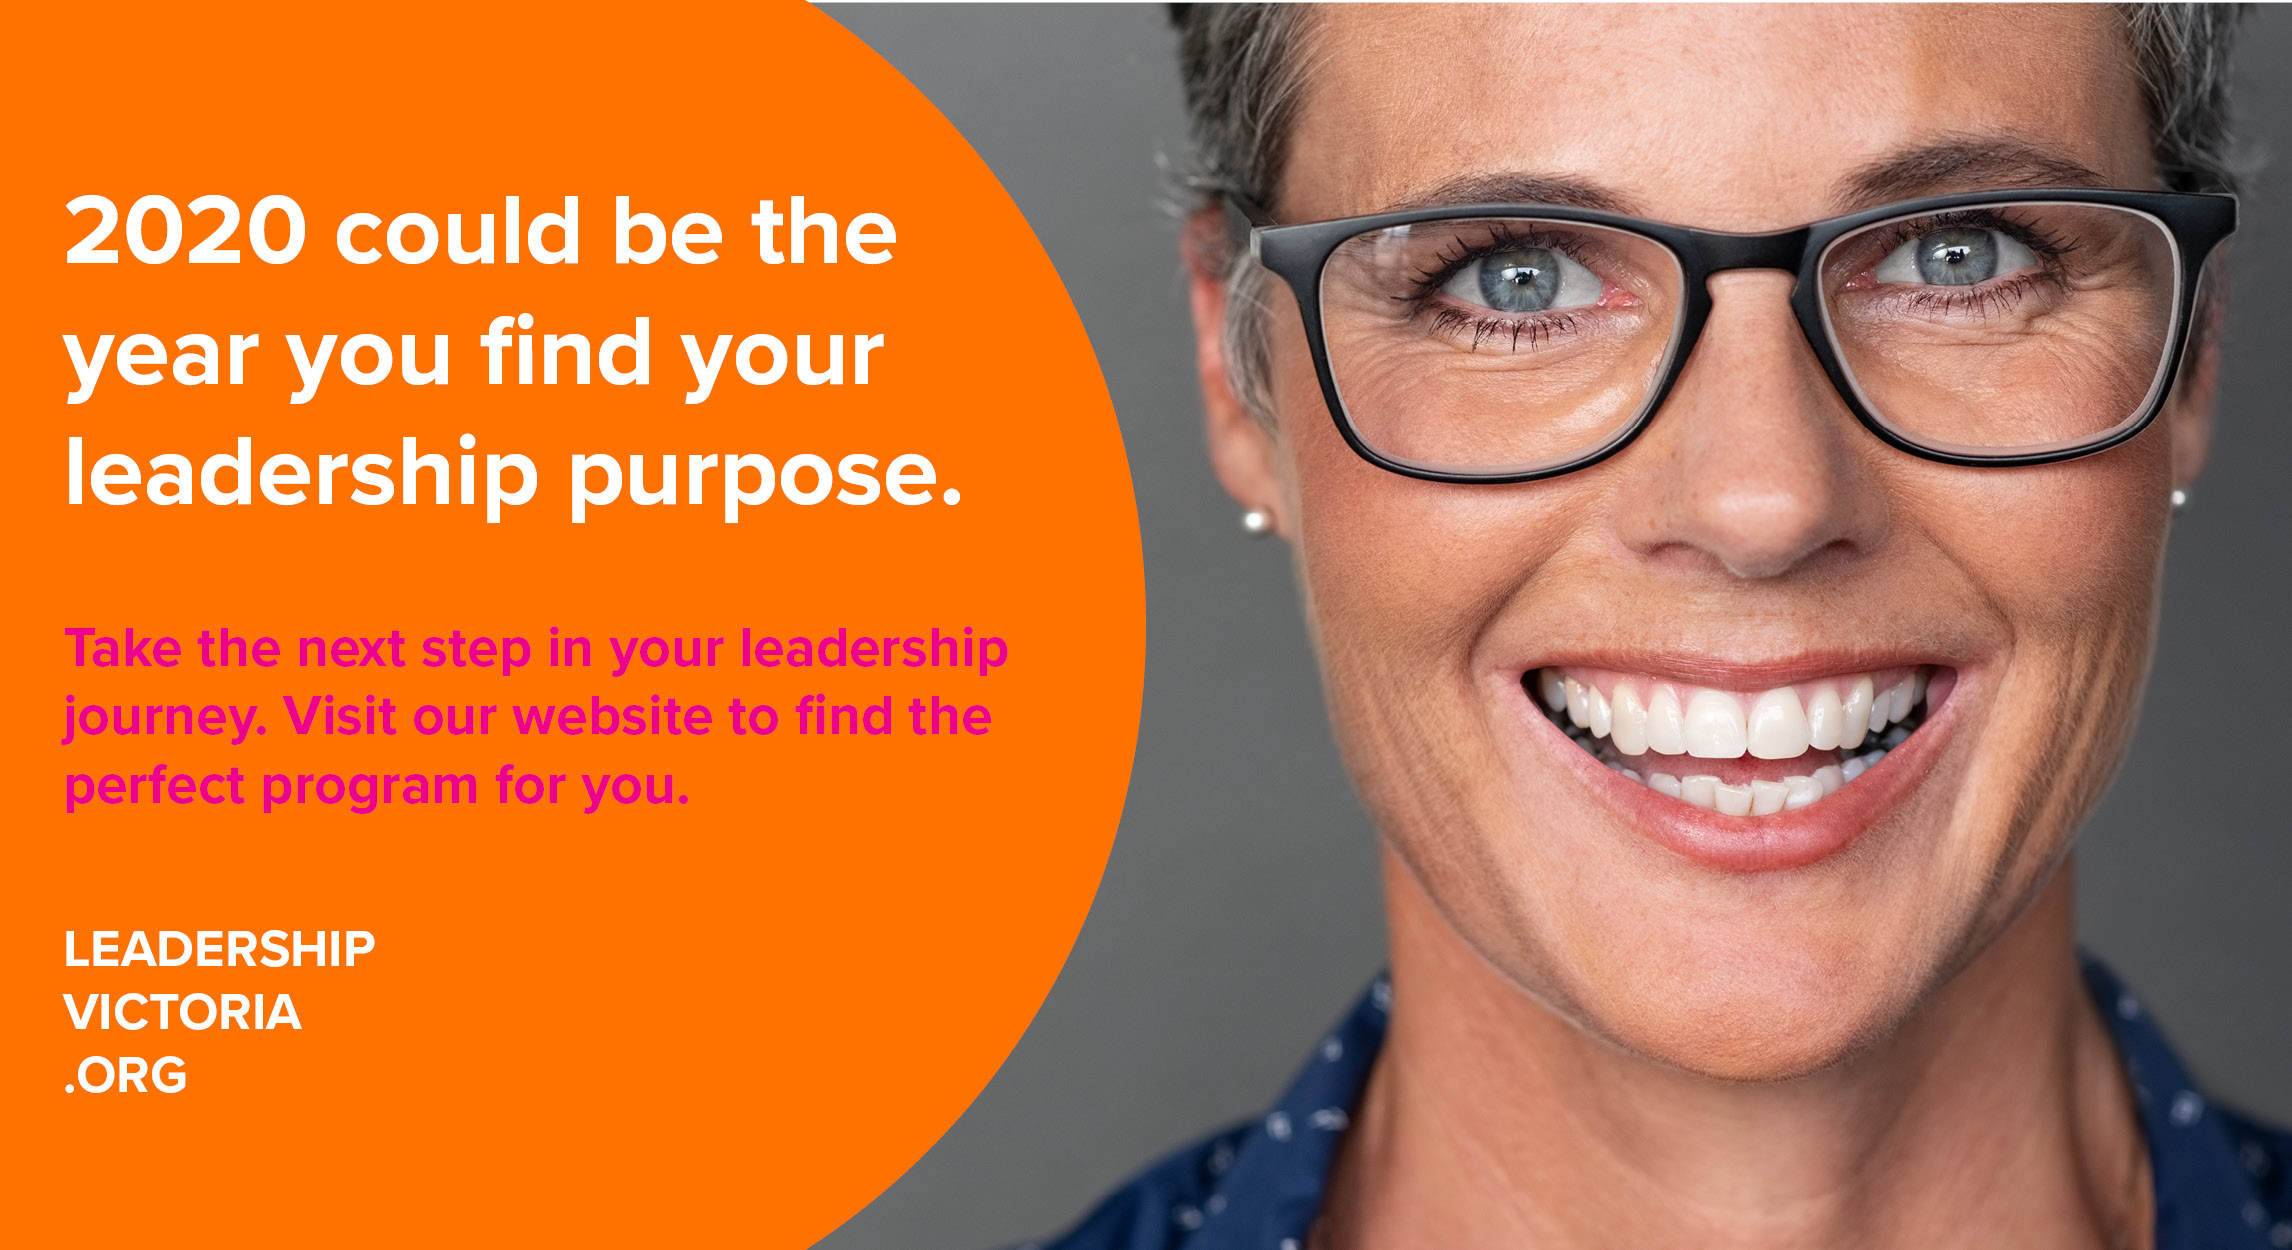 A woman in her 30s- to 40s wearing glasses with short hair is smiling at the camera. There is an orange shape on the left which includes the text: 202 could be the year you find your leadership purpose. Take the next step in your leadership journey. Visit our website to find the perfect program for you. Leadership Victoria Org. Click the image to be taken to the website.